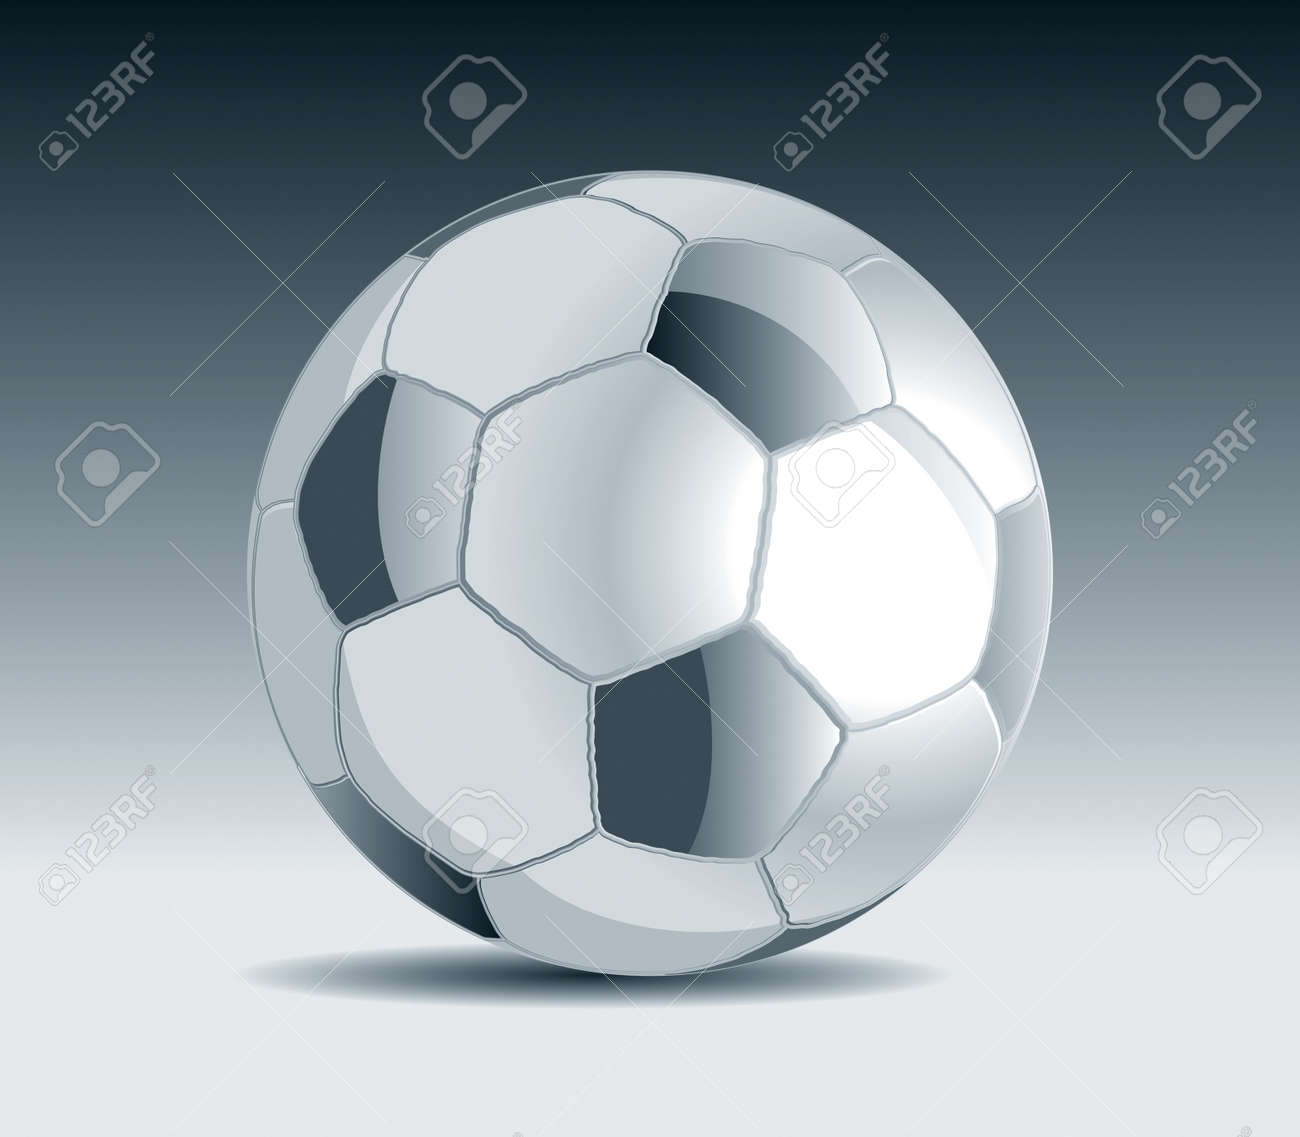 Metal Soccer Ball Drawing Stock Vector - 8643787